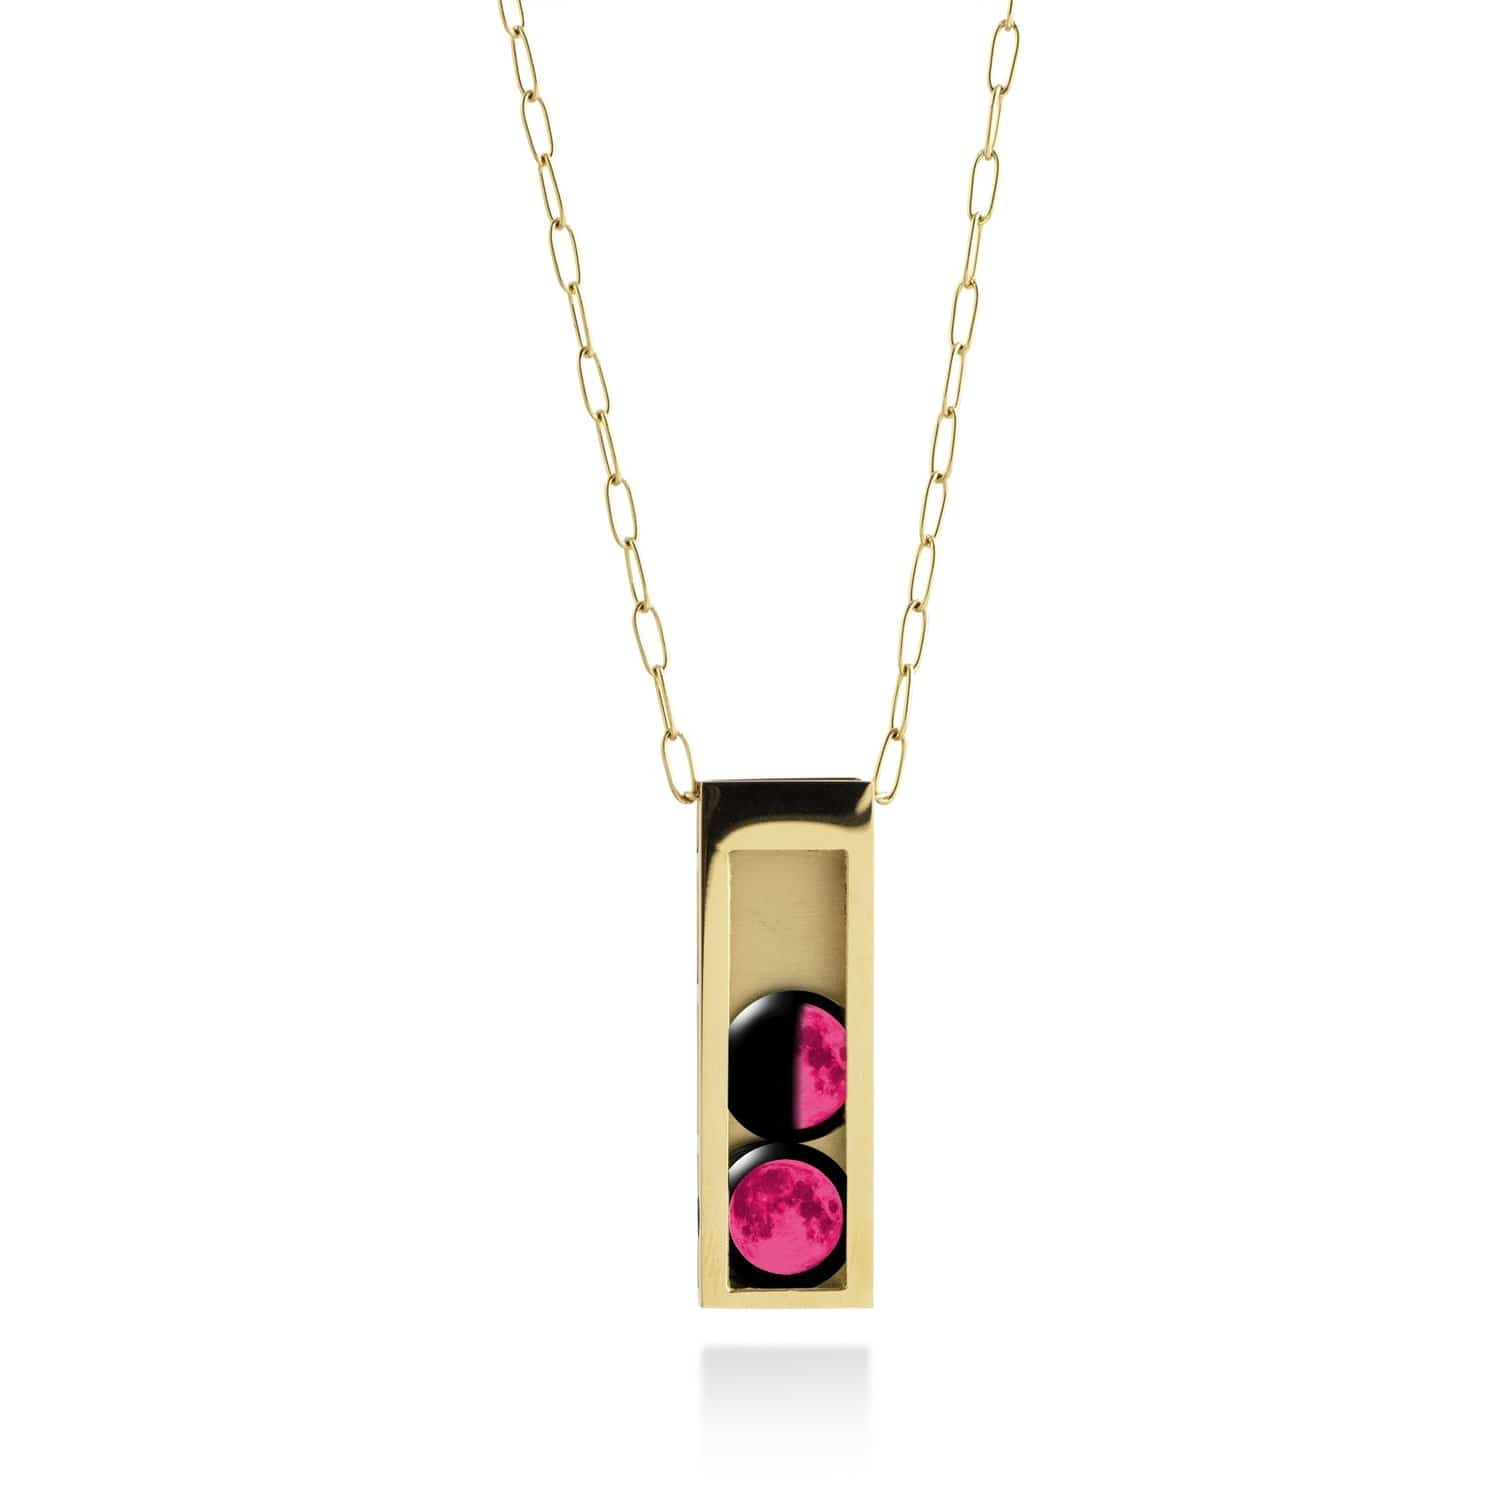 Two Moon Selene Locket in Gold with Pink Moons